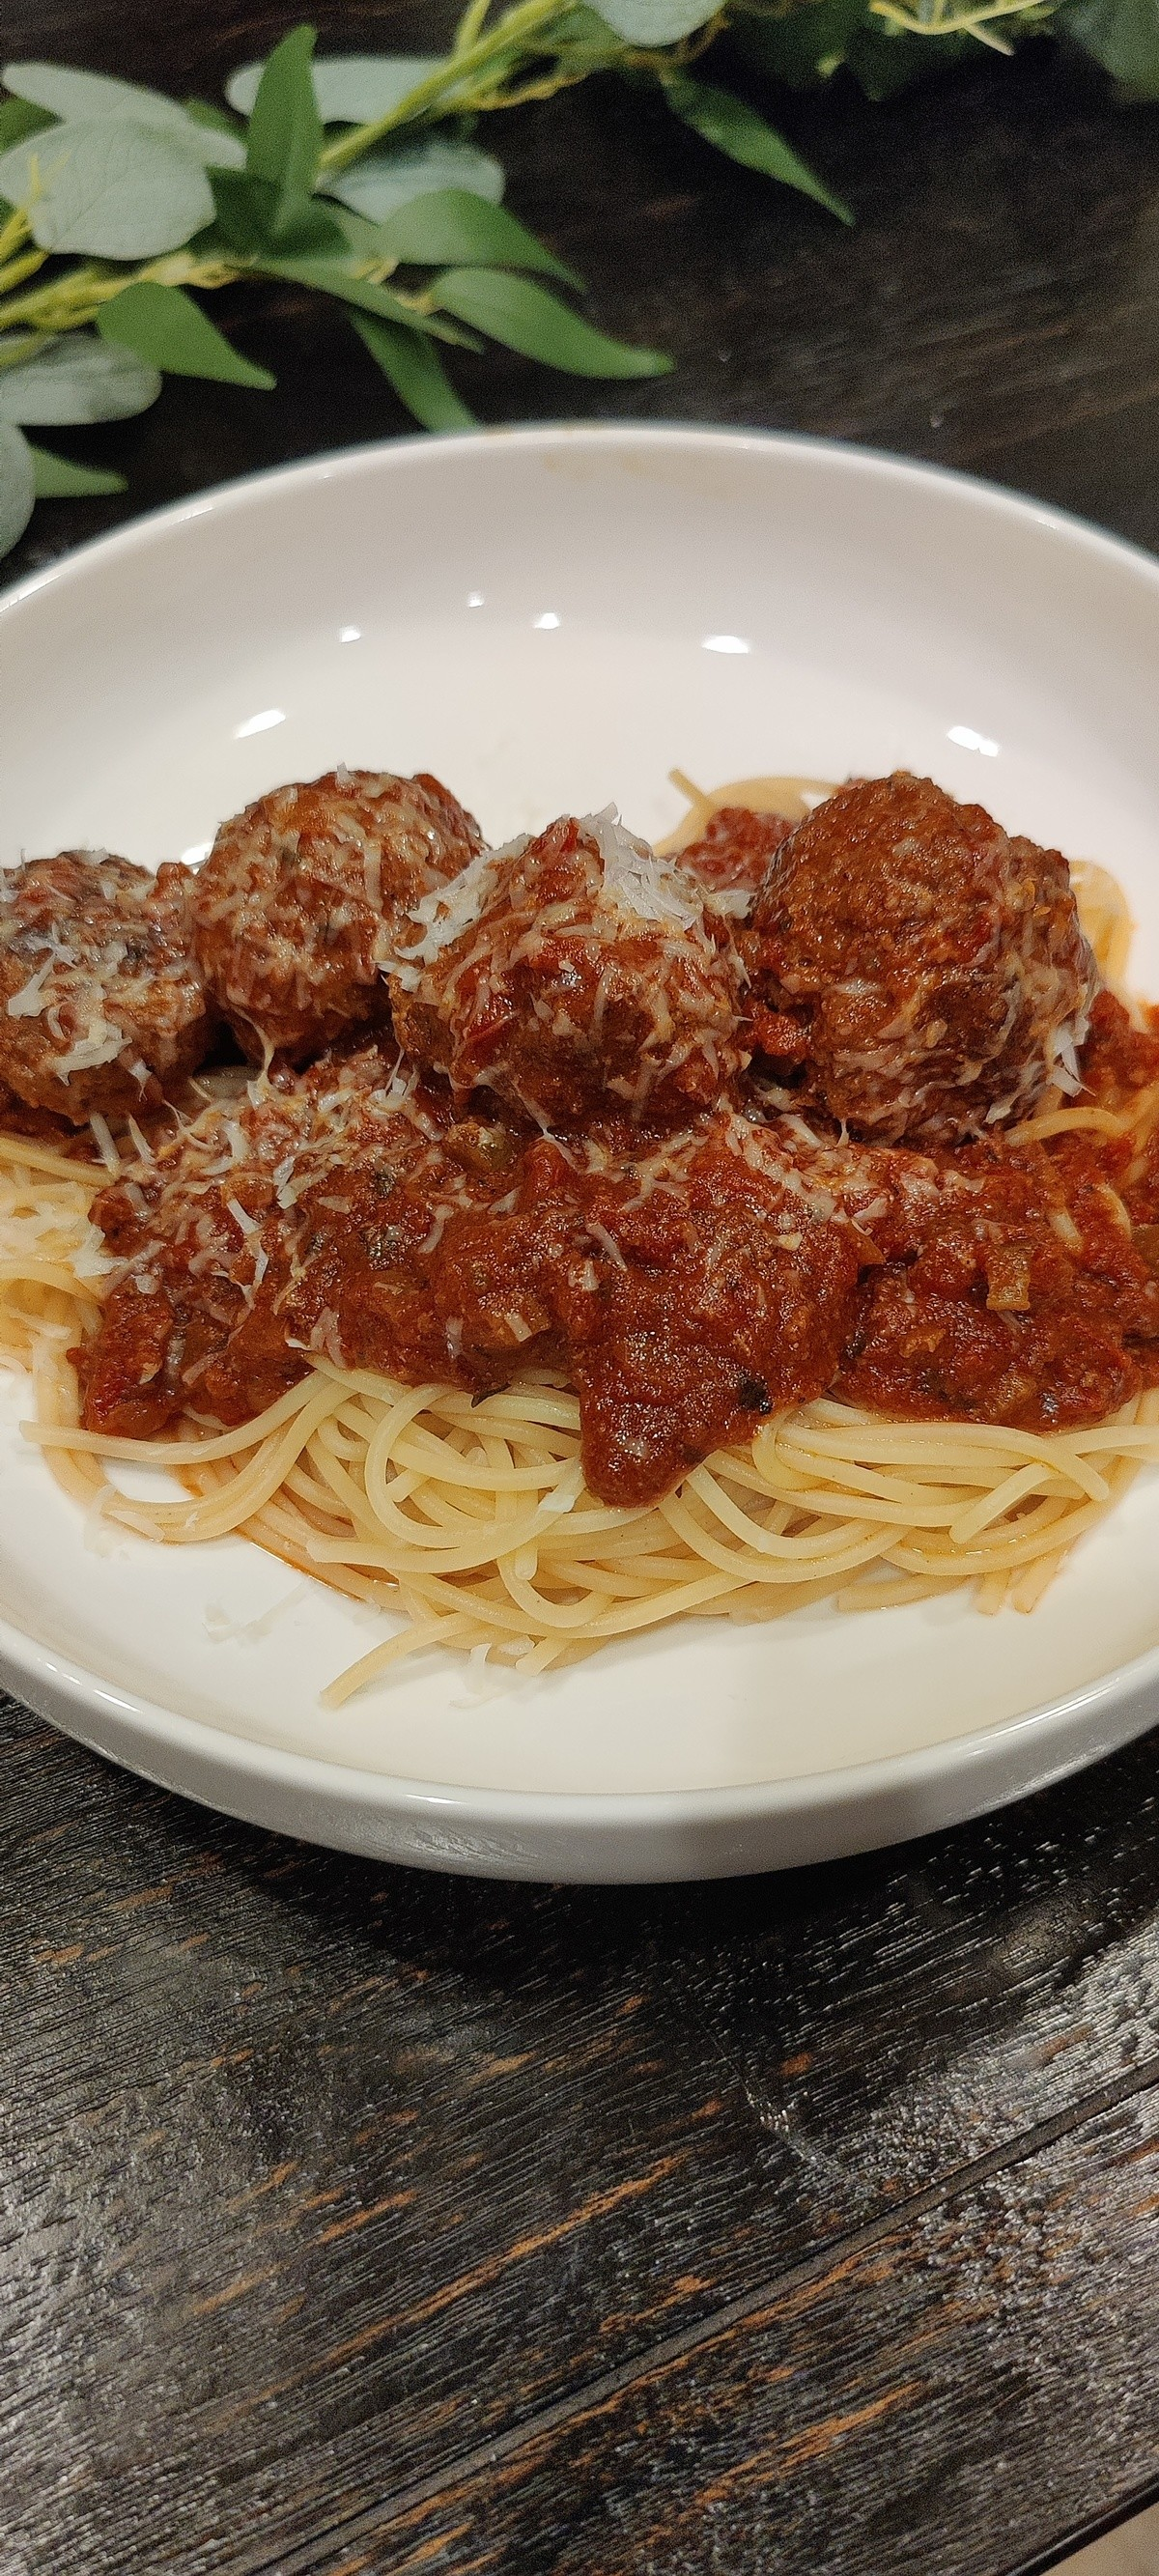 Spaghetti and Meatballs. join list: QuixoticMeals (123 subs)Mention History.. Swaghetti and memeballs.